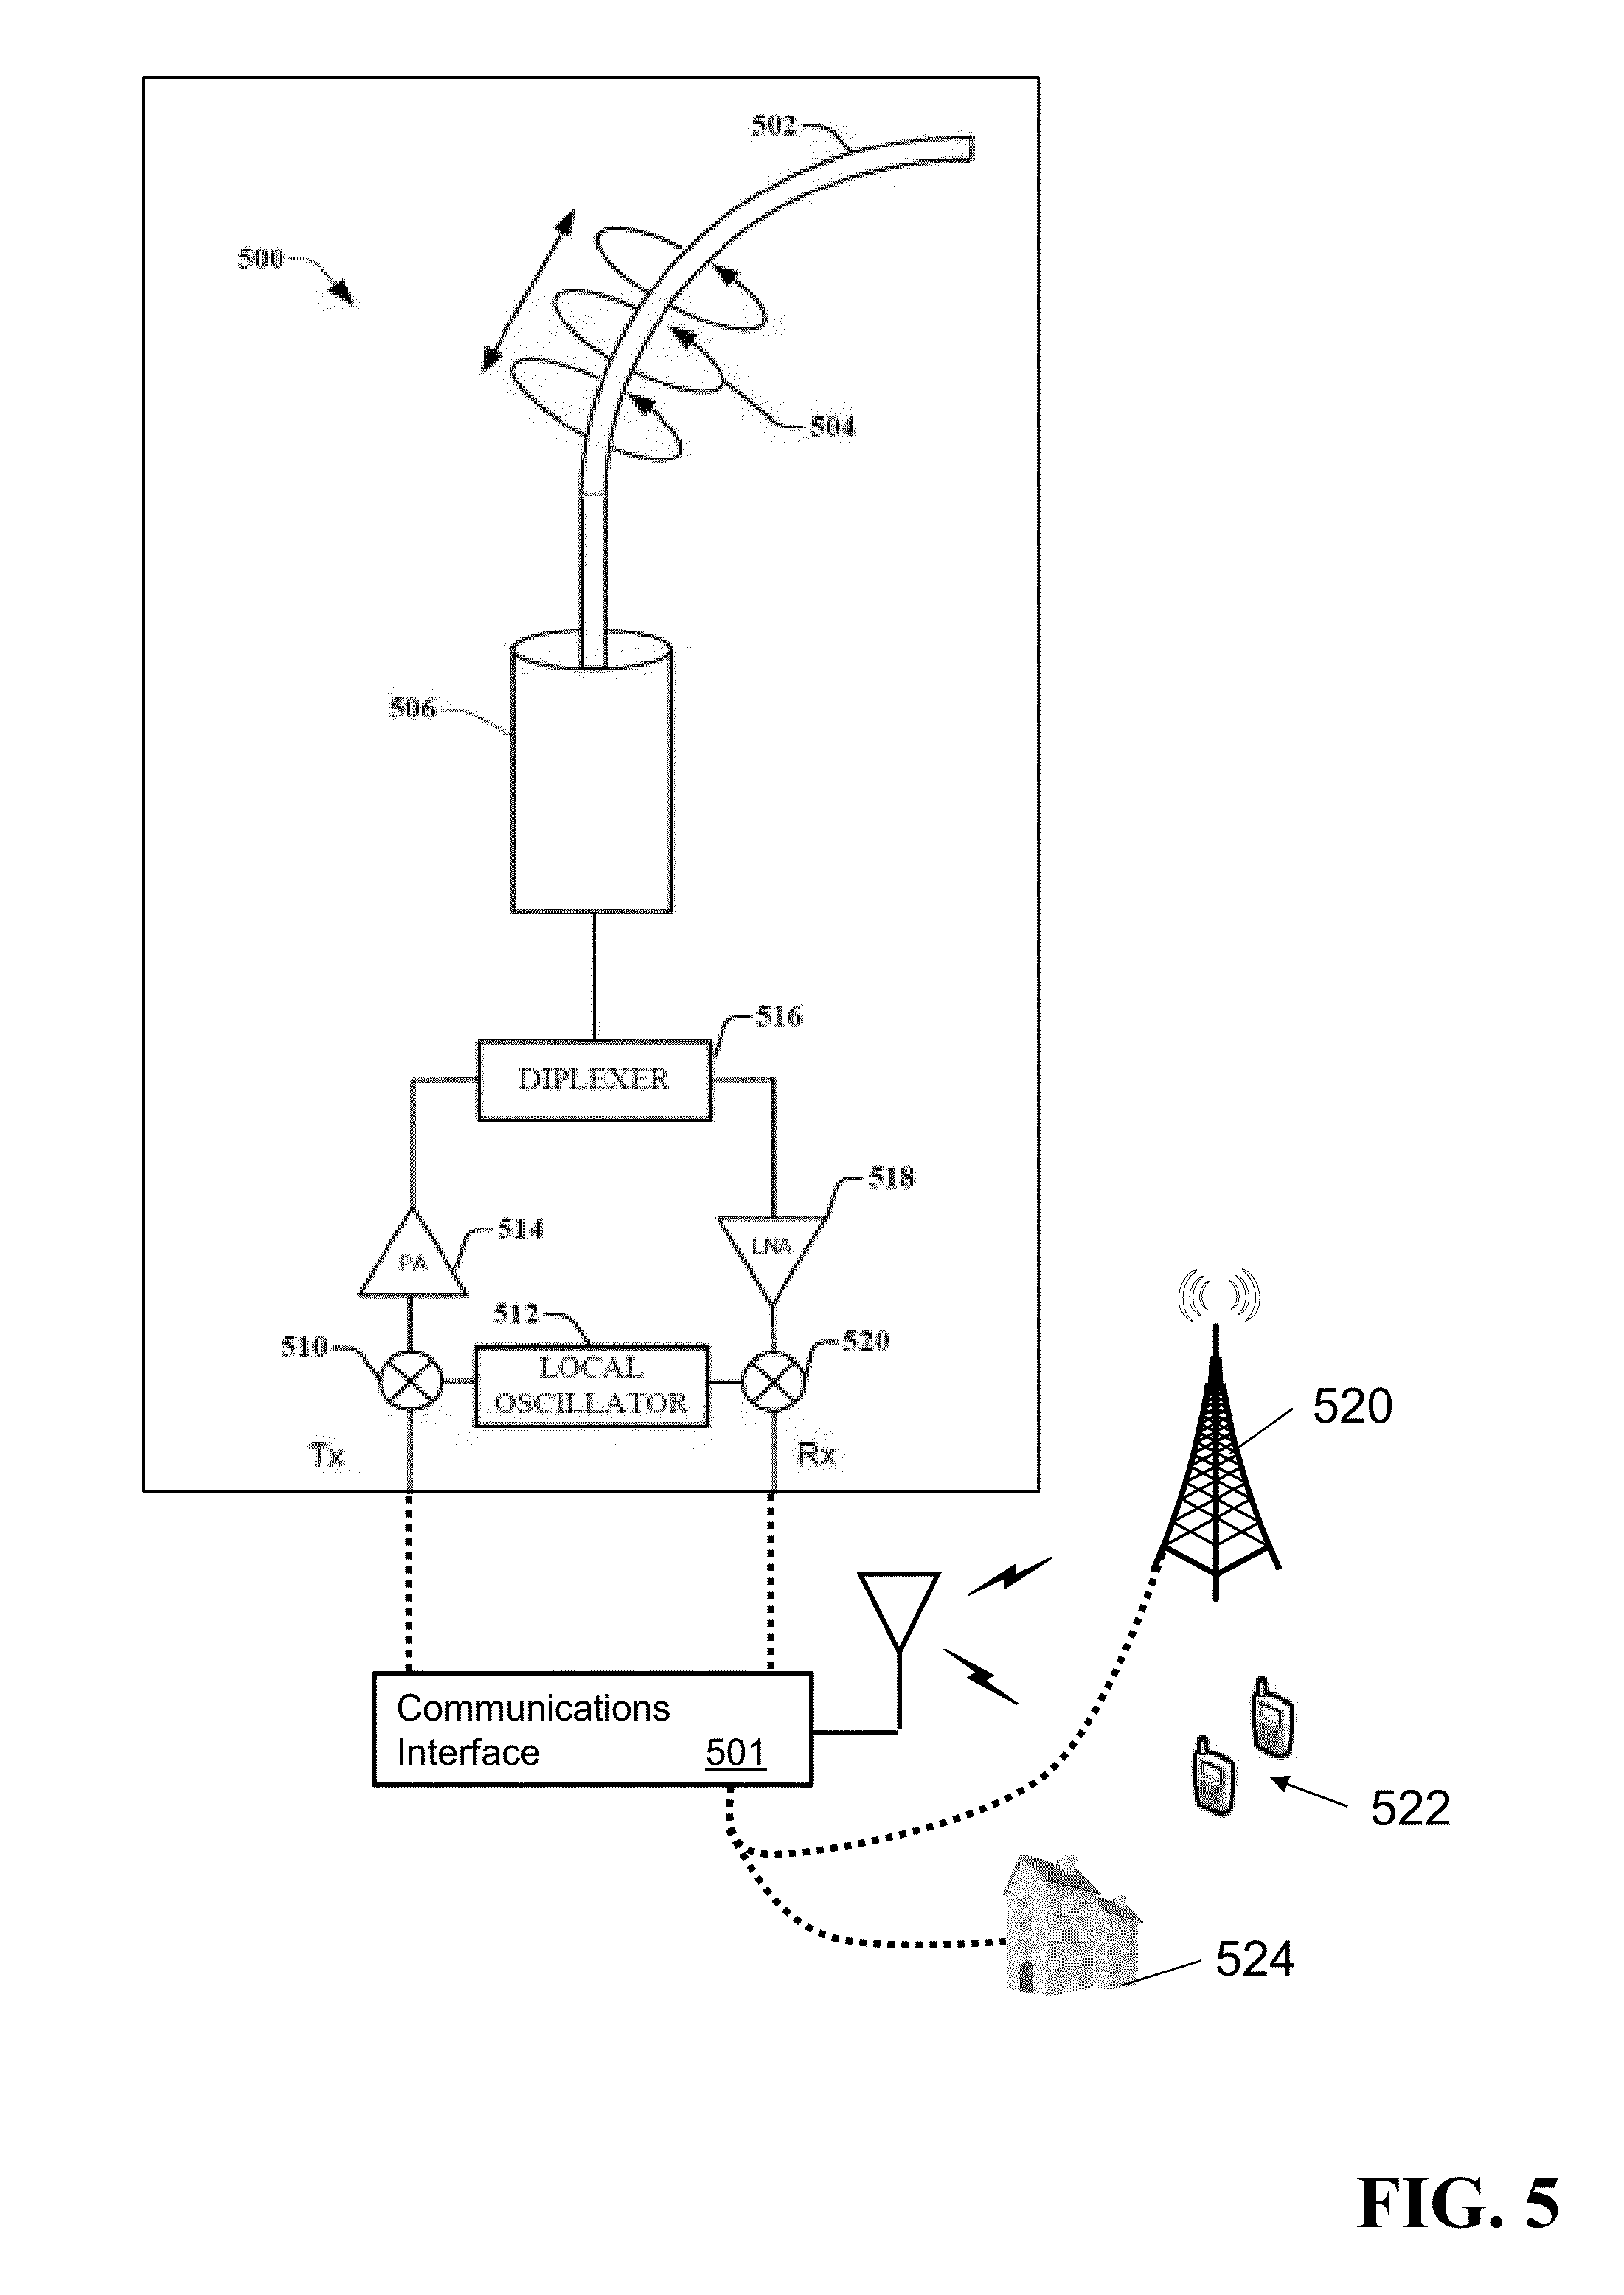 us9312919b1 transmission device with impairment pensation and Turn Signal Kit Wiring Diagram us9312919b1 transmission device with impairment pensation and methods for use therewith patents